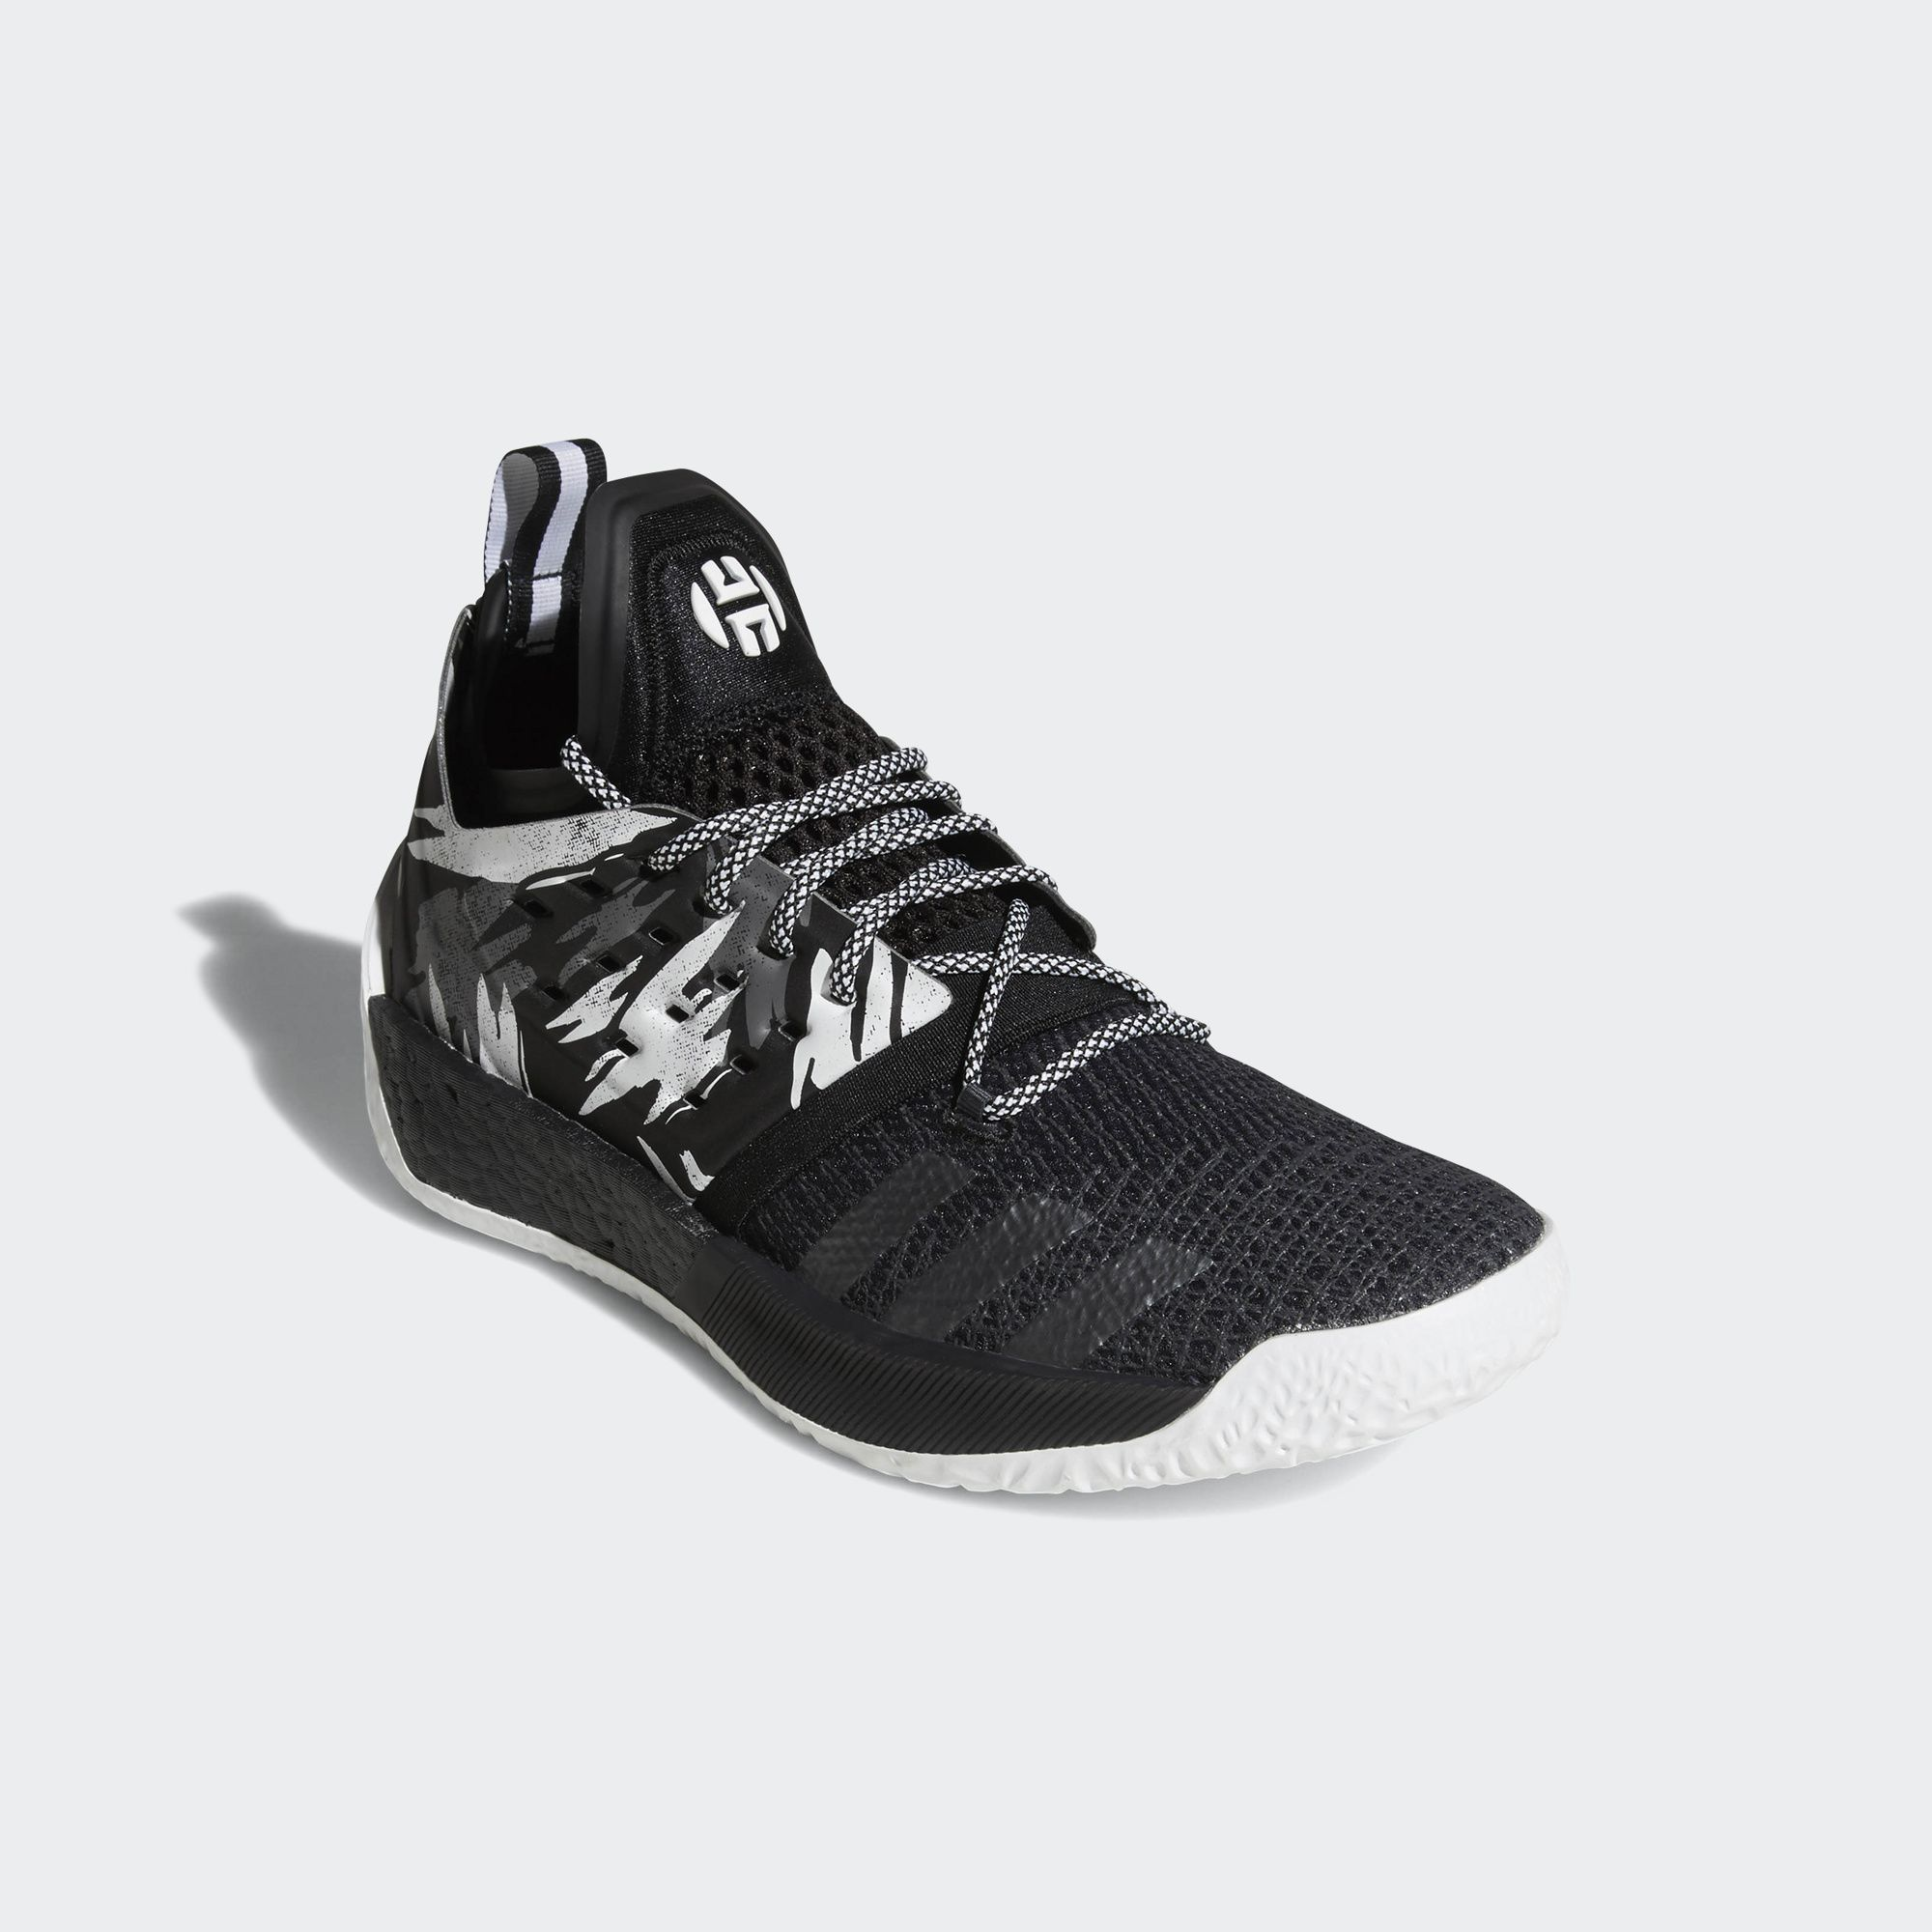 e053b051a21b 2 black white red shoes  adidas harden vol 2 black white 2